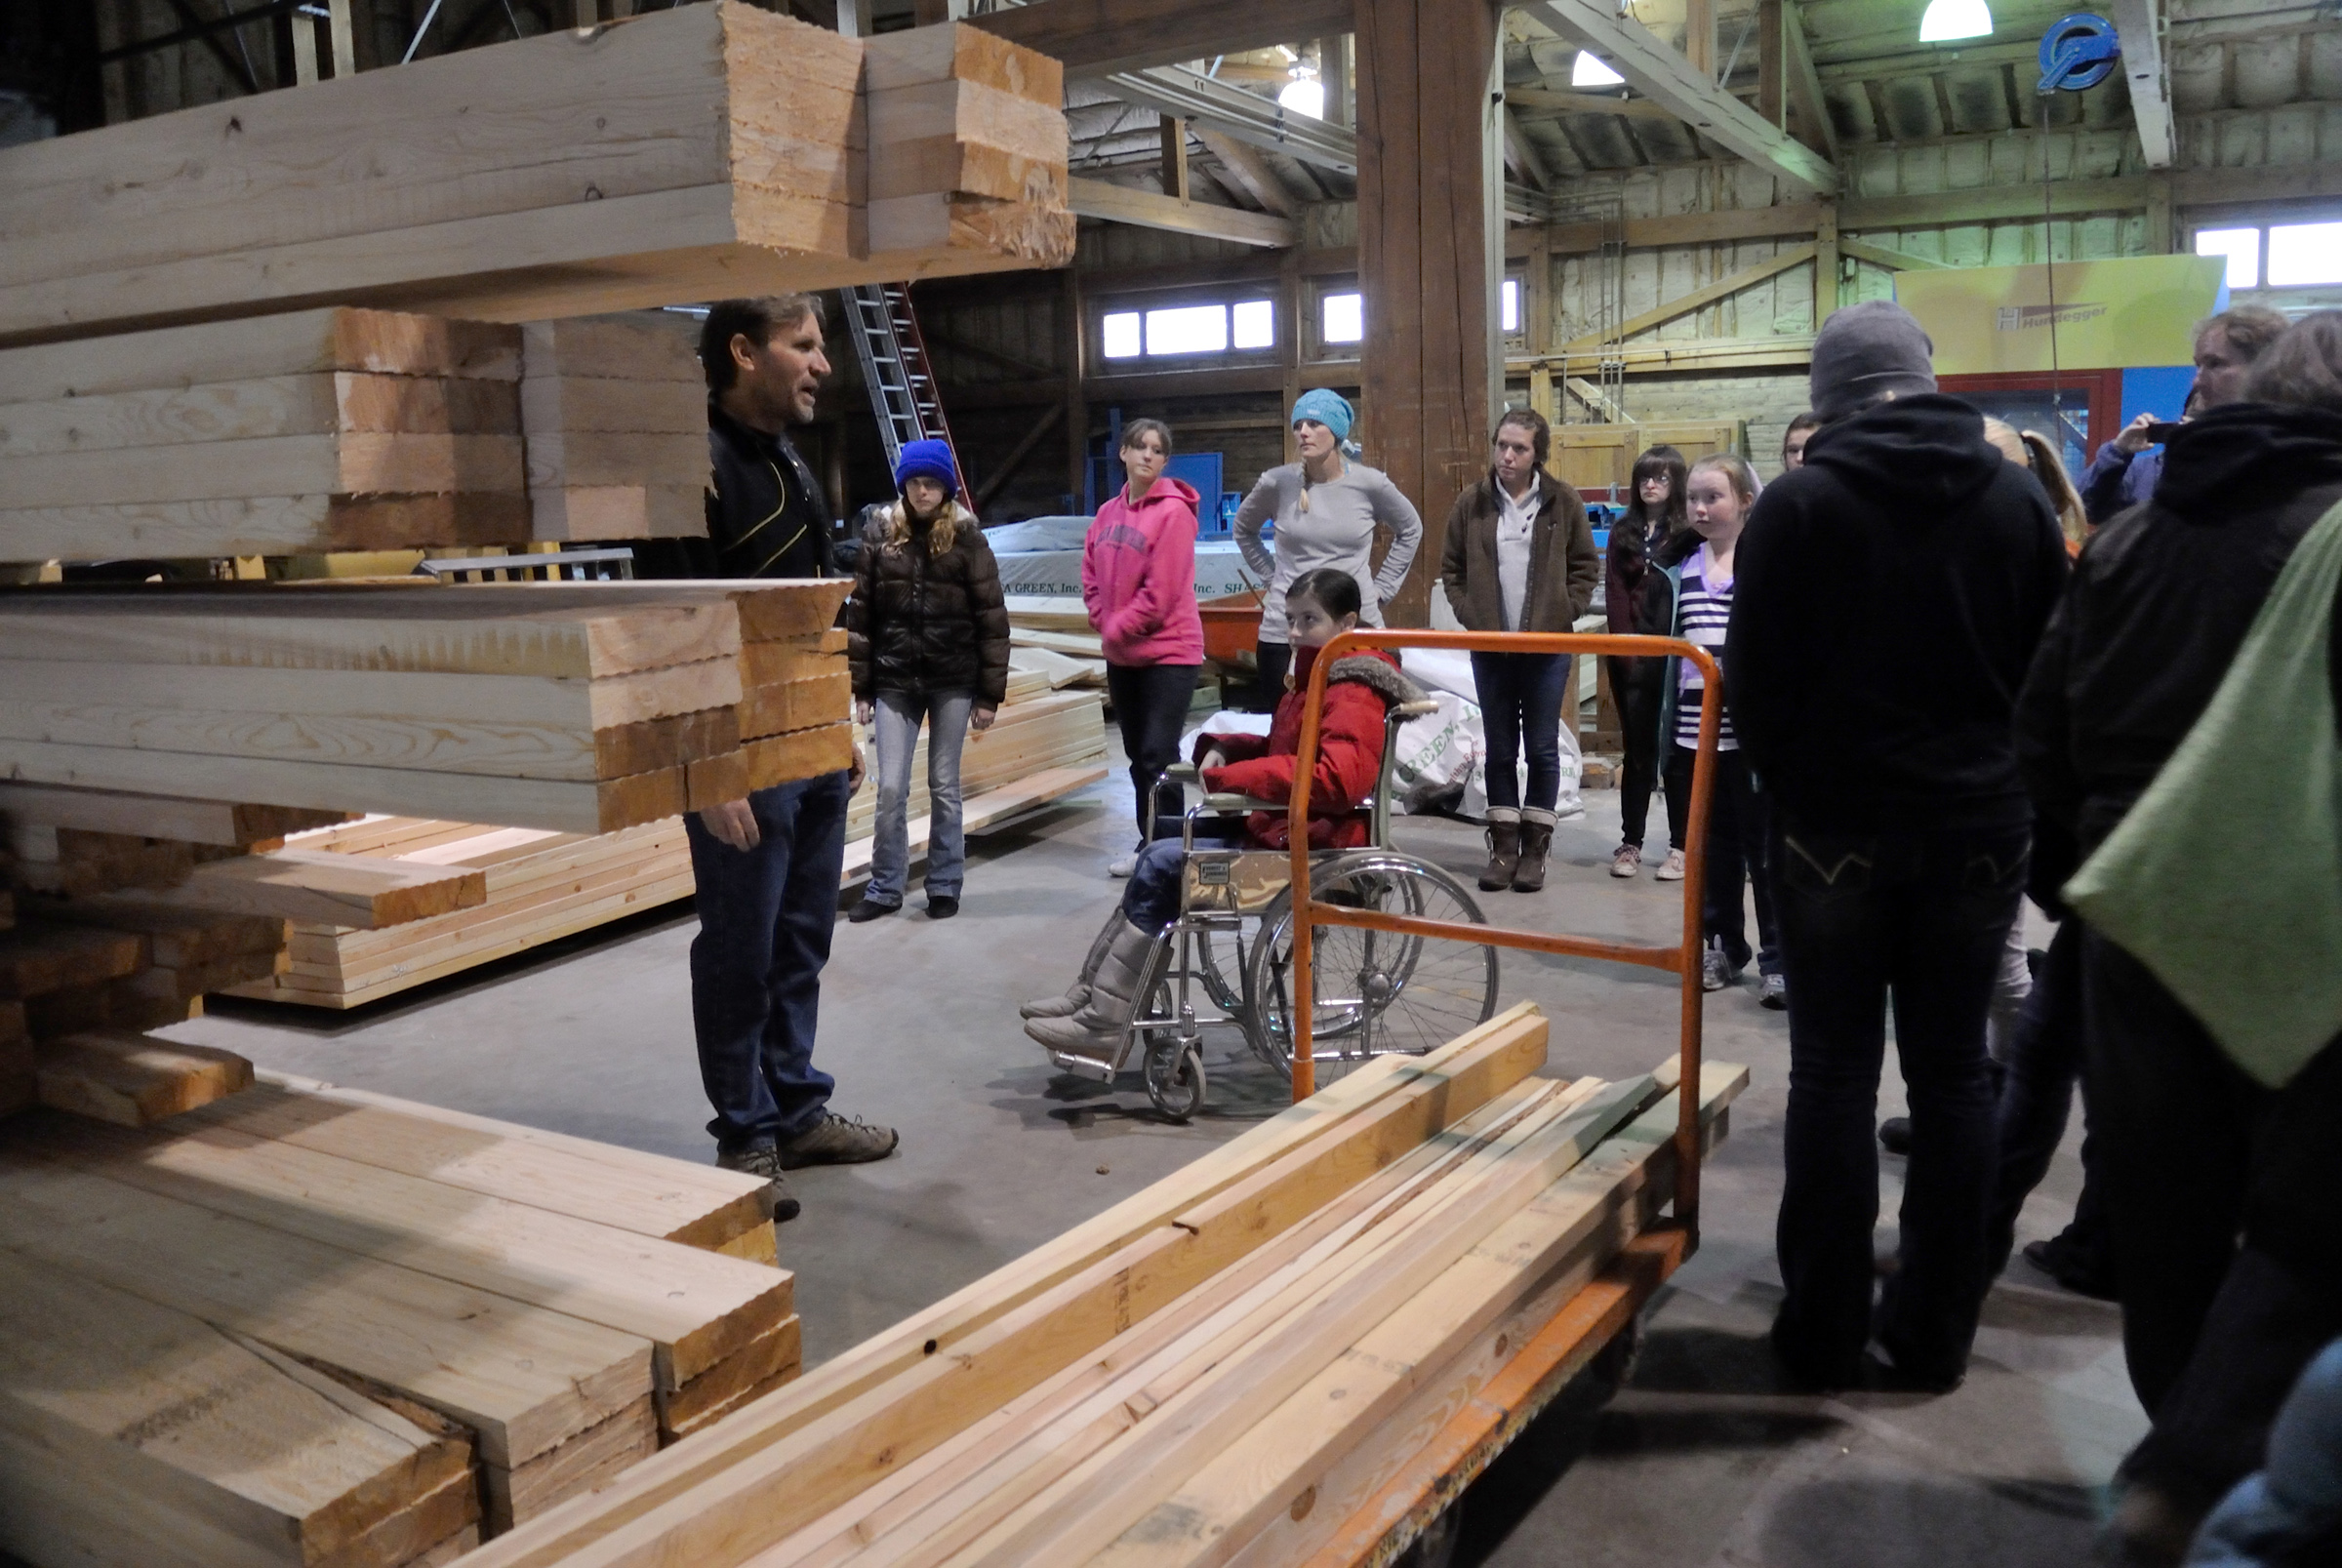 Girl Scouts tour Euclid Timber Frames, a partner on the project and which produces lumber from beetle-kill wood that will be used in the cabins at Trefoil Ranch.